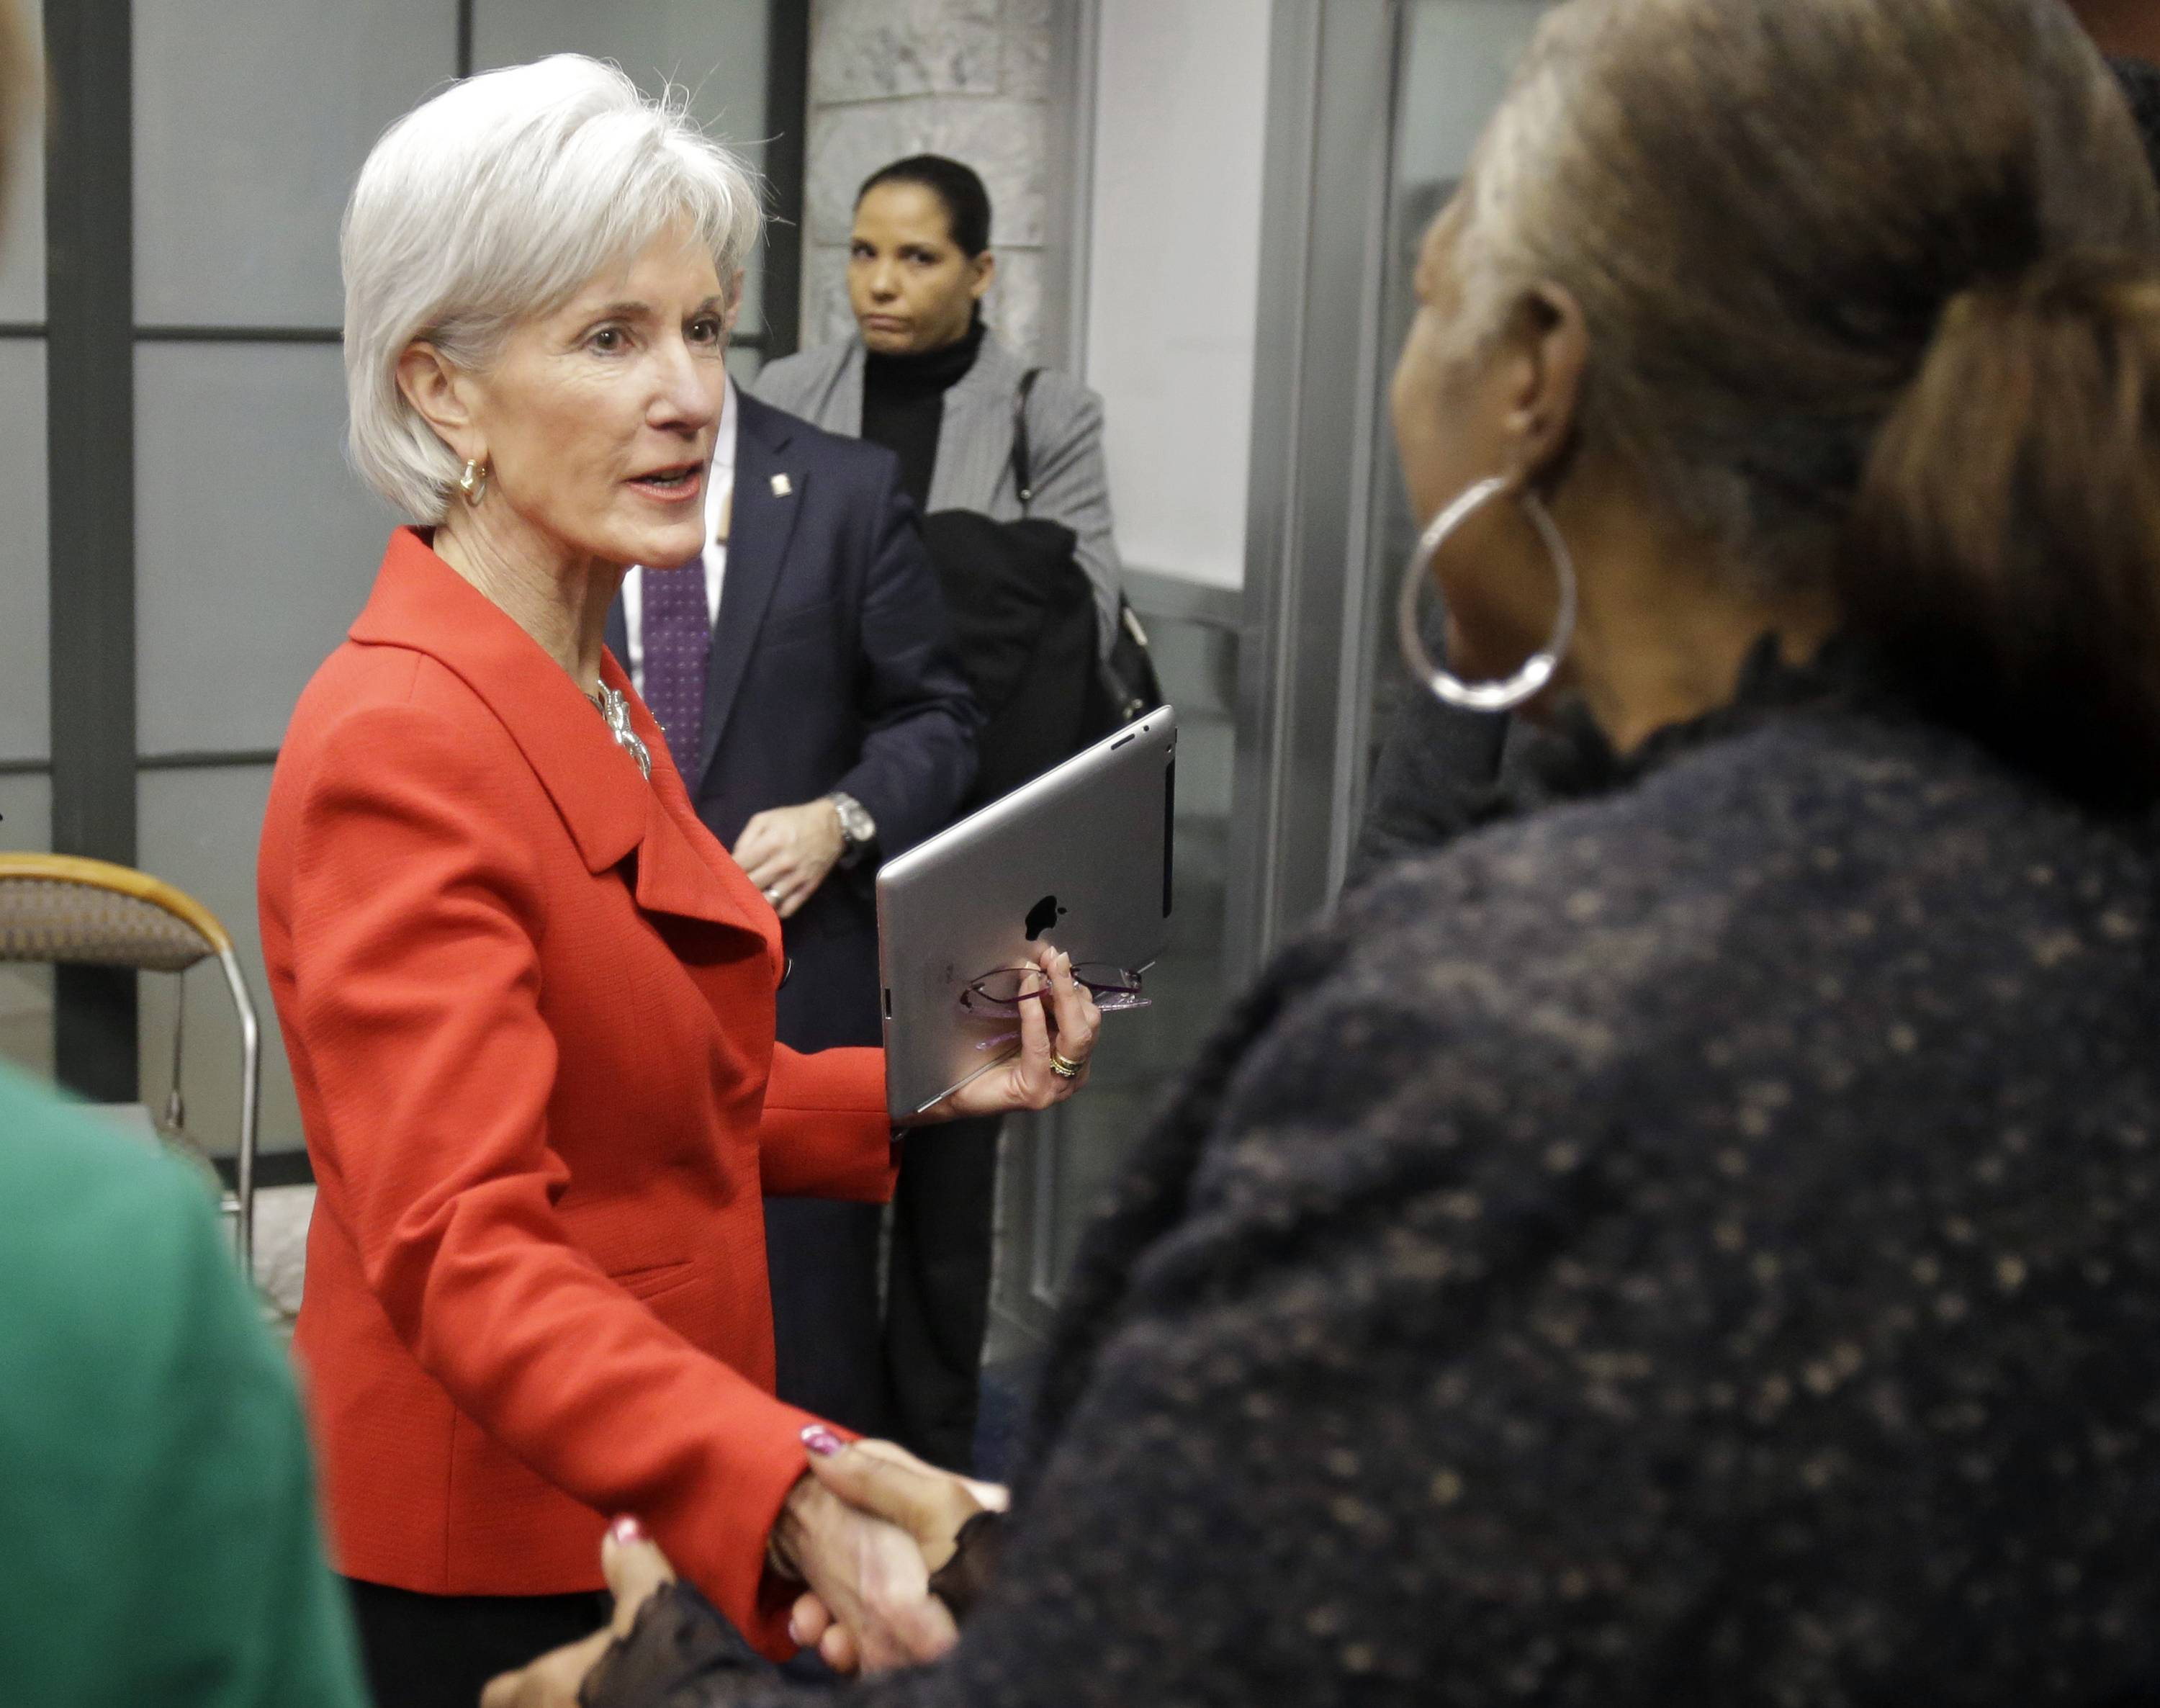 Health and Human Services Secretary Kathleen Sebelius greets visitors after a news conference on enrollment in affordable health coverage in Cleveland on Feb. 3. New numbers released Tuesday show nearly 3.3 million people signed up through Feb. 1.